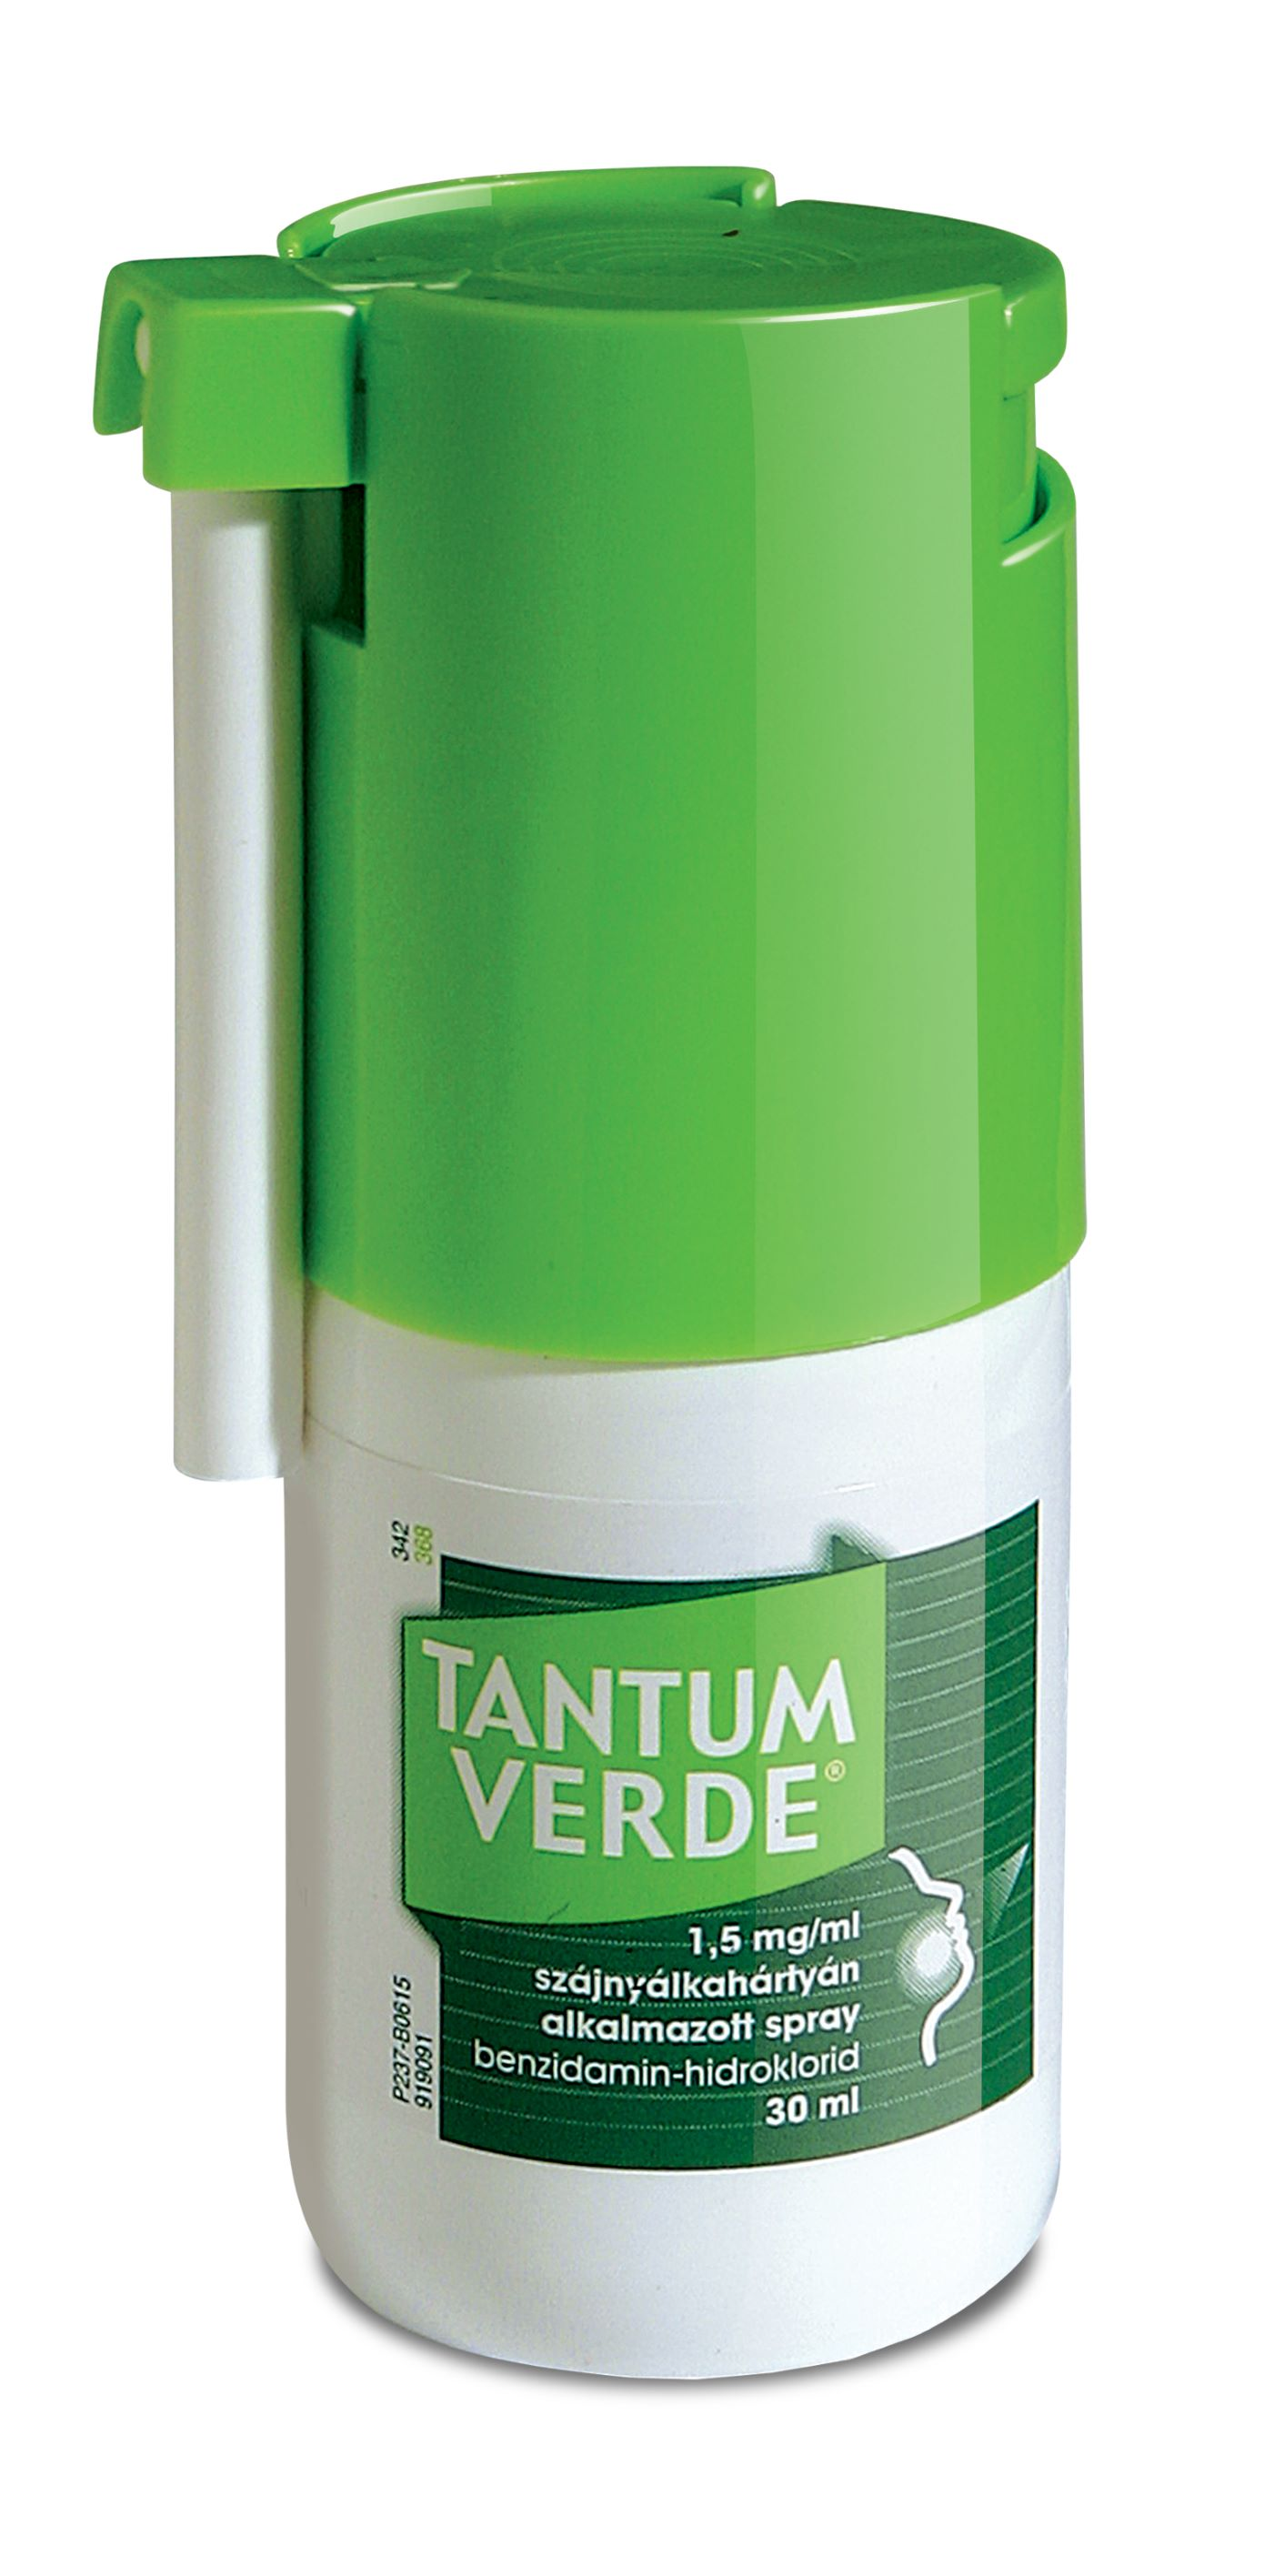 Tantum Verde 1,5 mg/ml spray